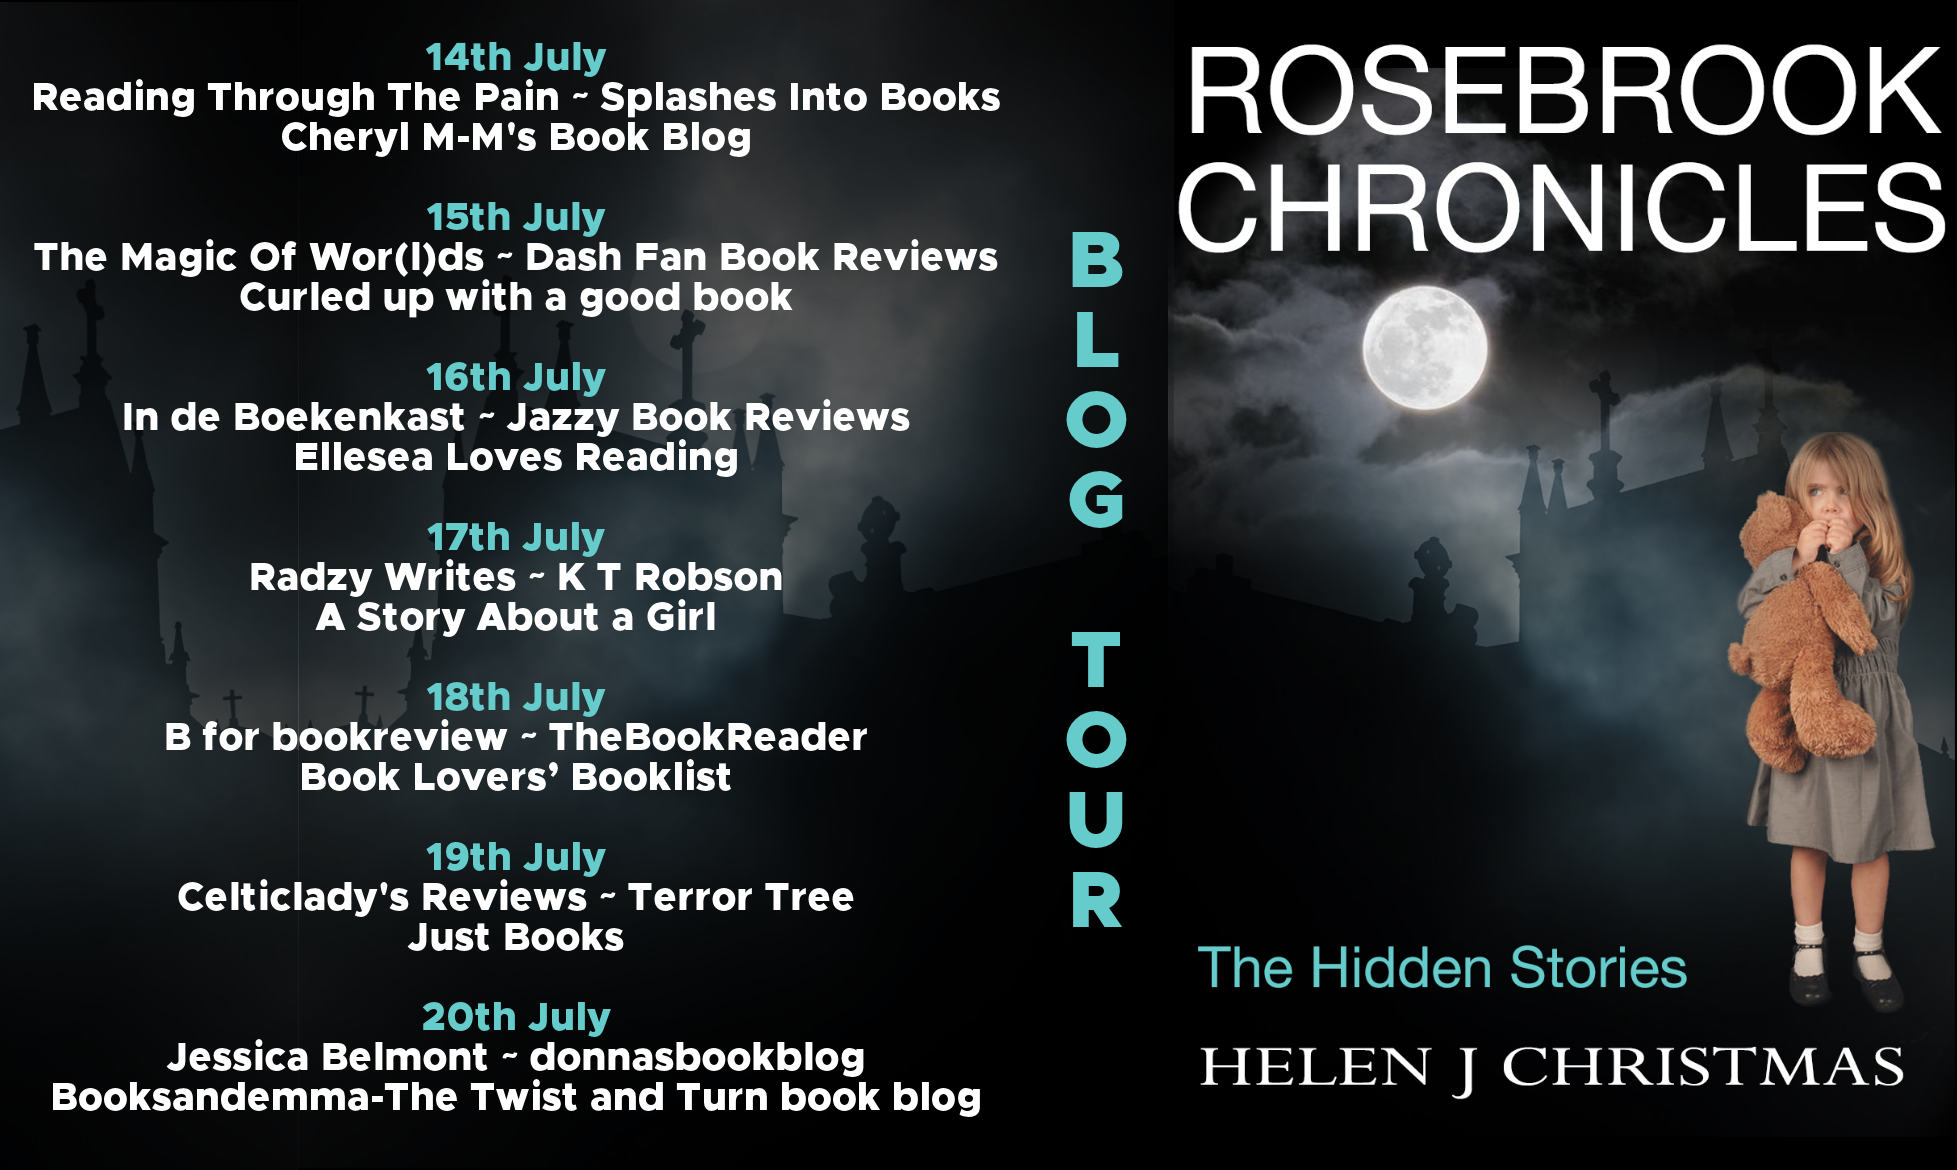 Rosebrook Chronicles Blog tour with Rachel's Rare Resources